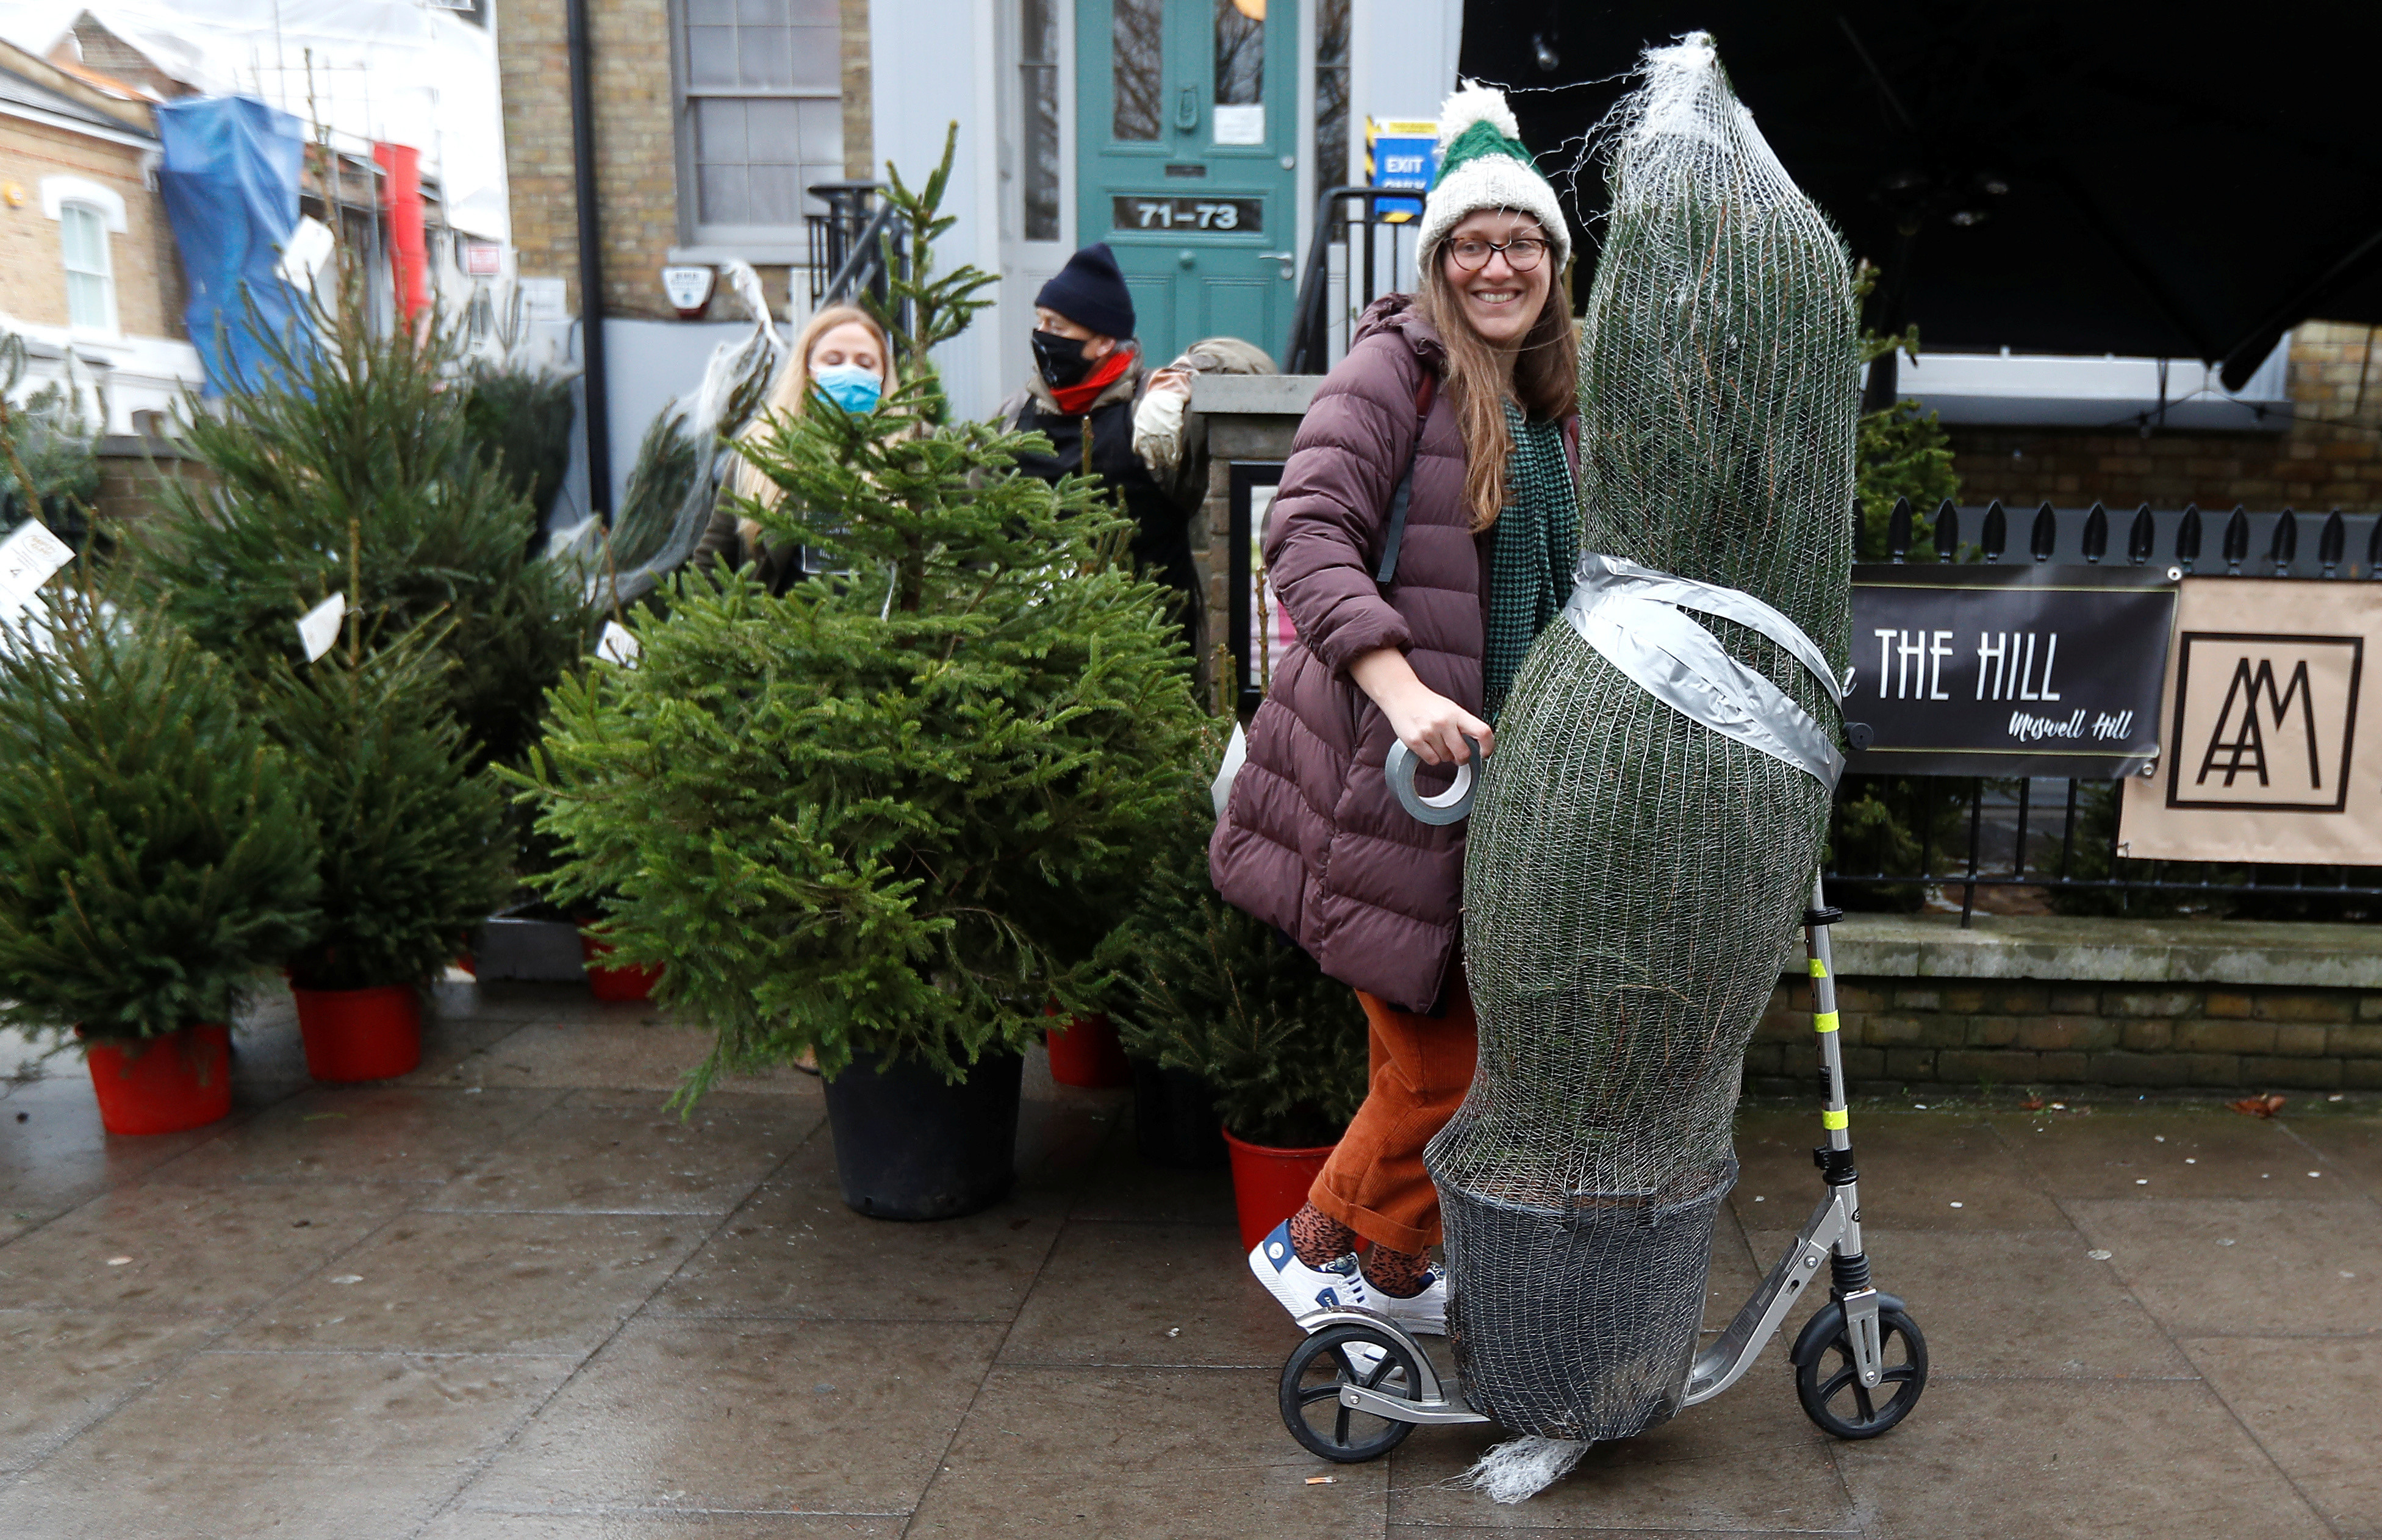 A woman who rented a Christmas tree from Christmas on The Hill carries her tree away on a scooter, in London, Britain, December 12, 2020. Picture taken December 12, 2020.